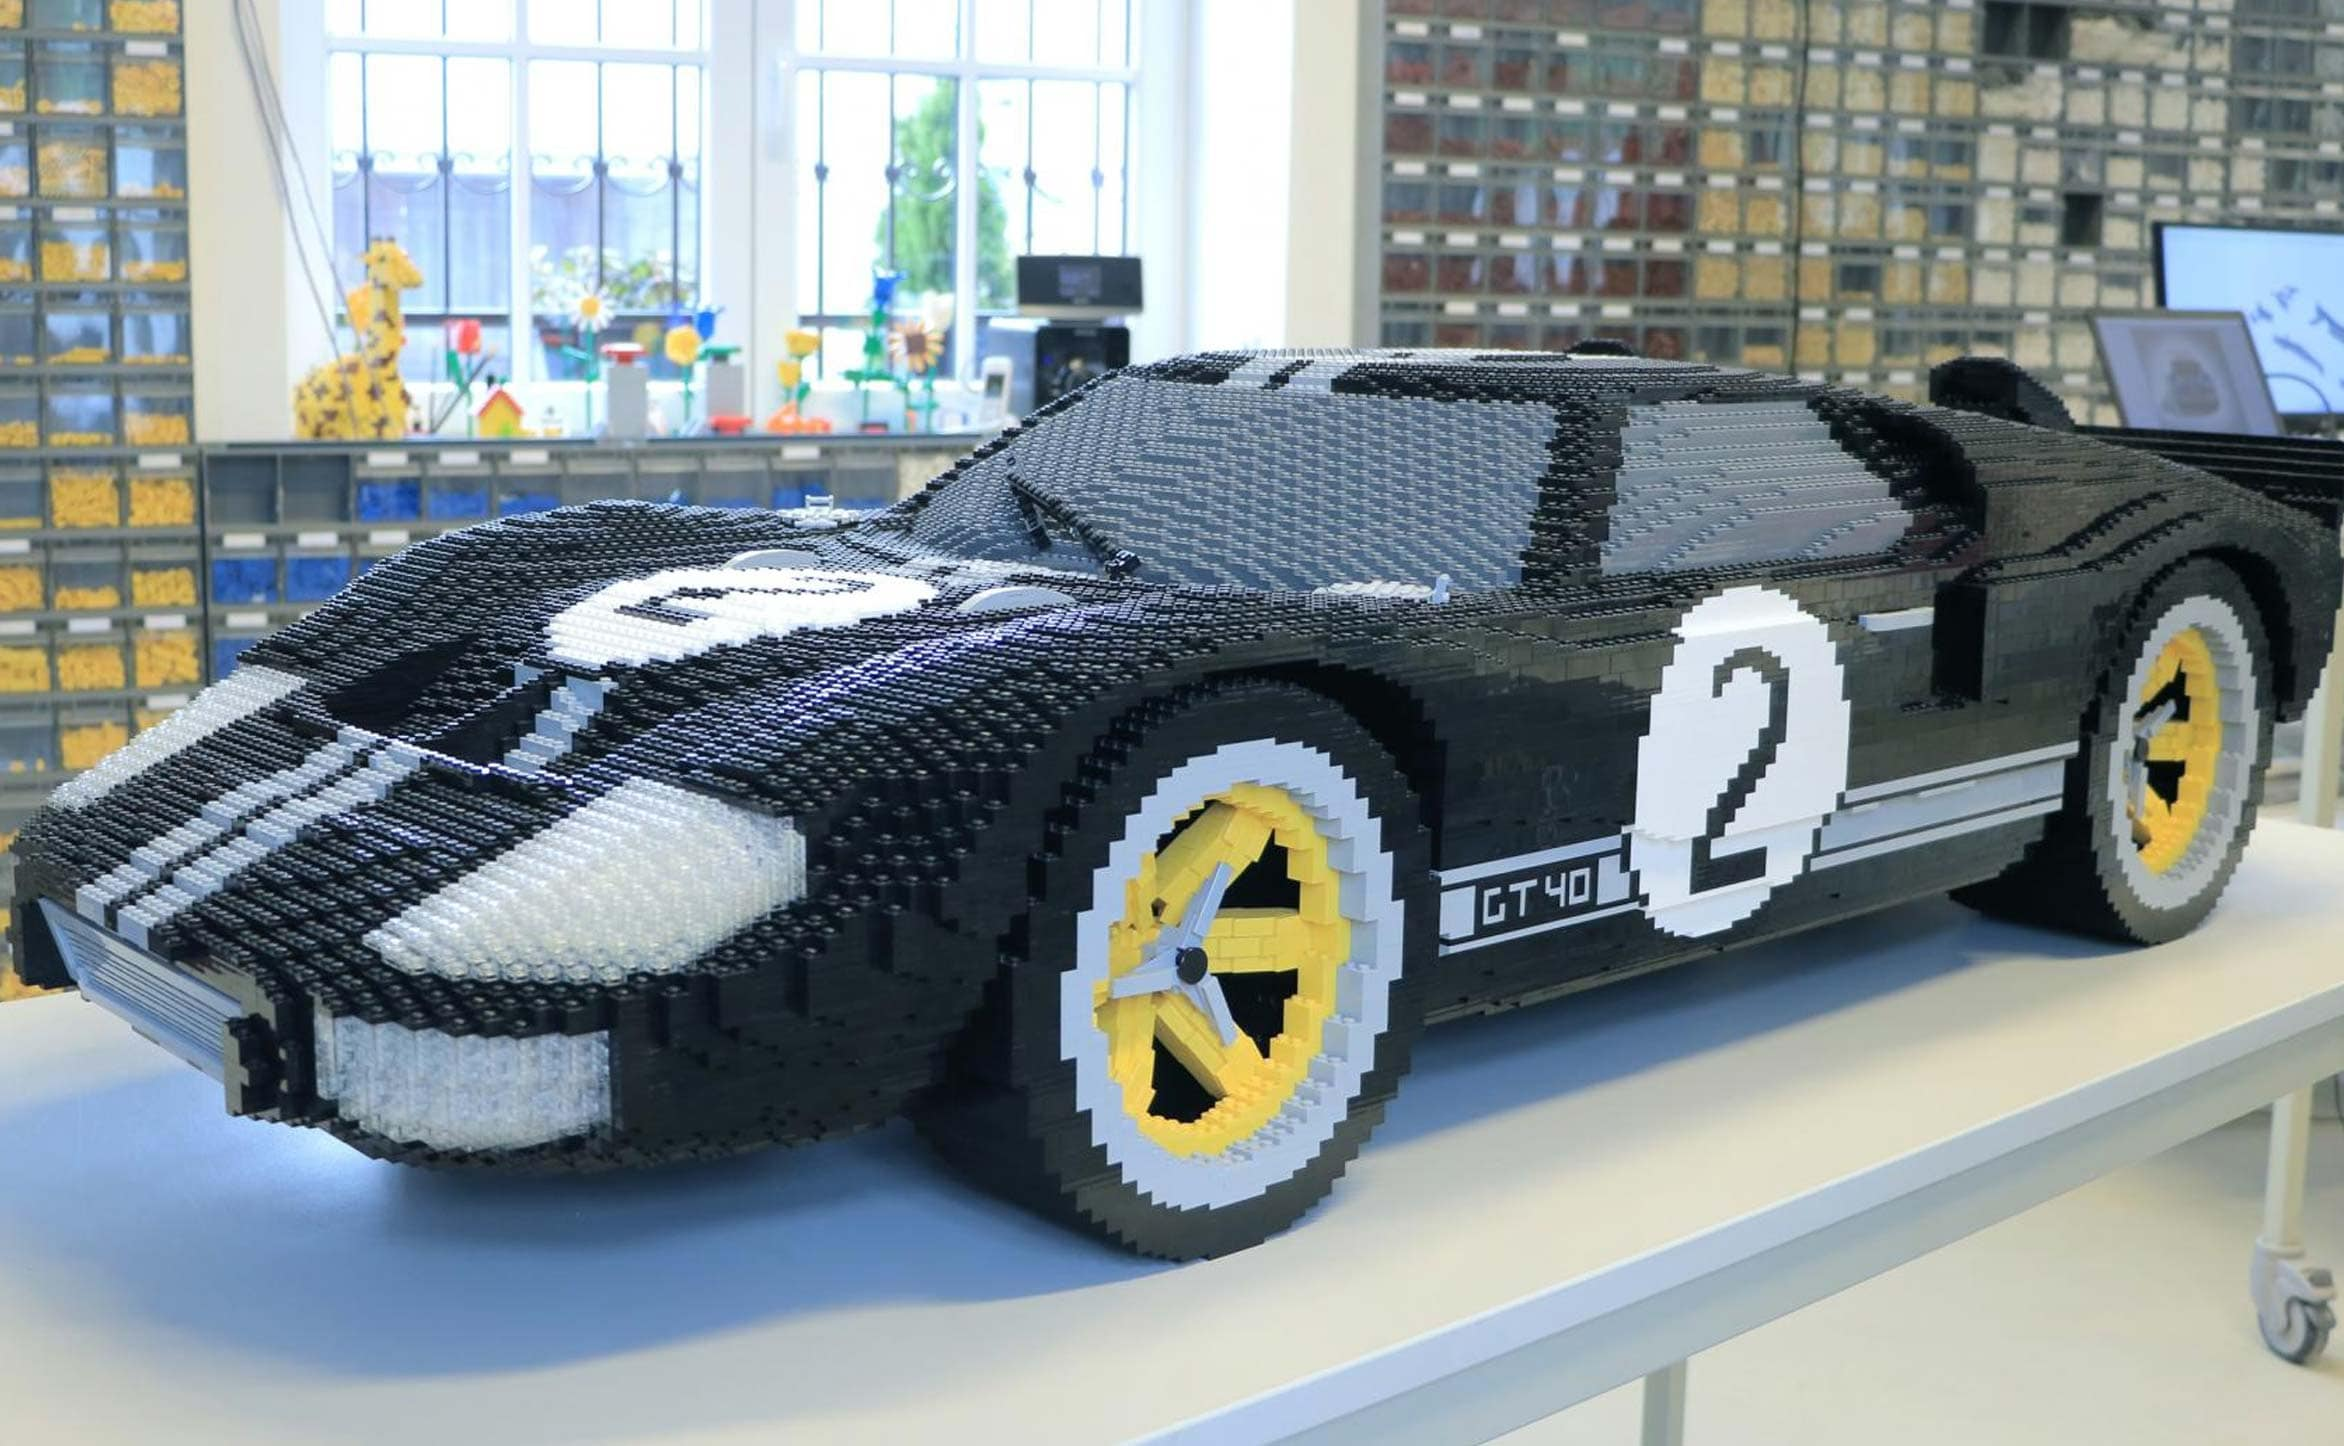 ford commemorates 1966 le mans win with lego ford gt ndtv carandbike. Black Bedroom Furniture Sets. Home Design Ideas